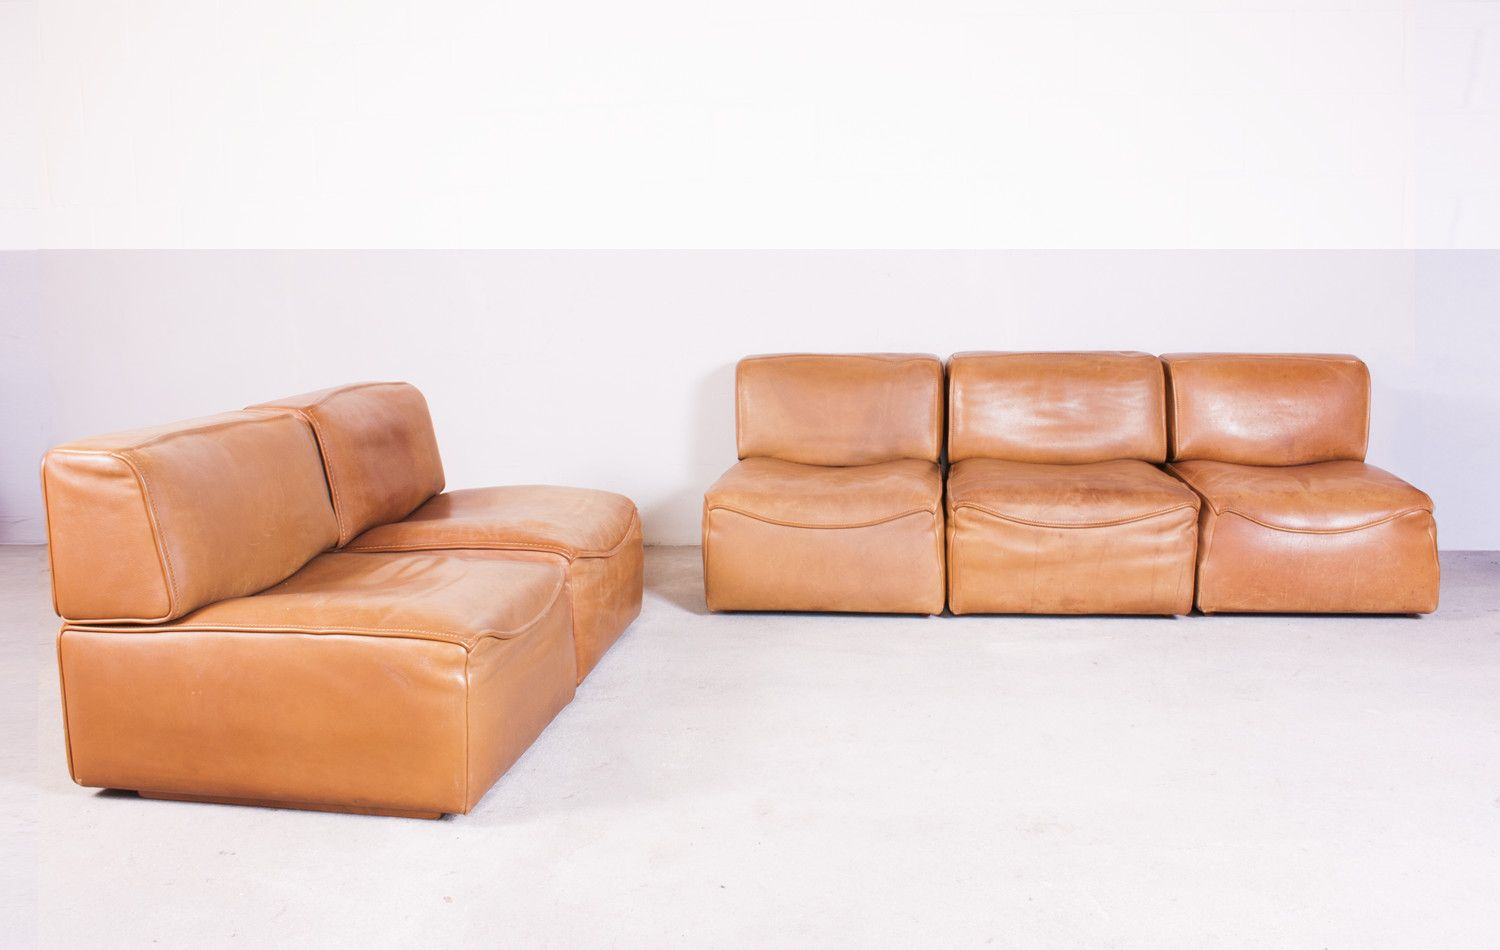 Ds15 Modular Sofa In Buffalo Leather From De Sede 1970 For Sale At Pamono